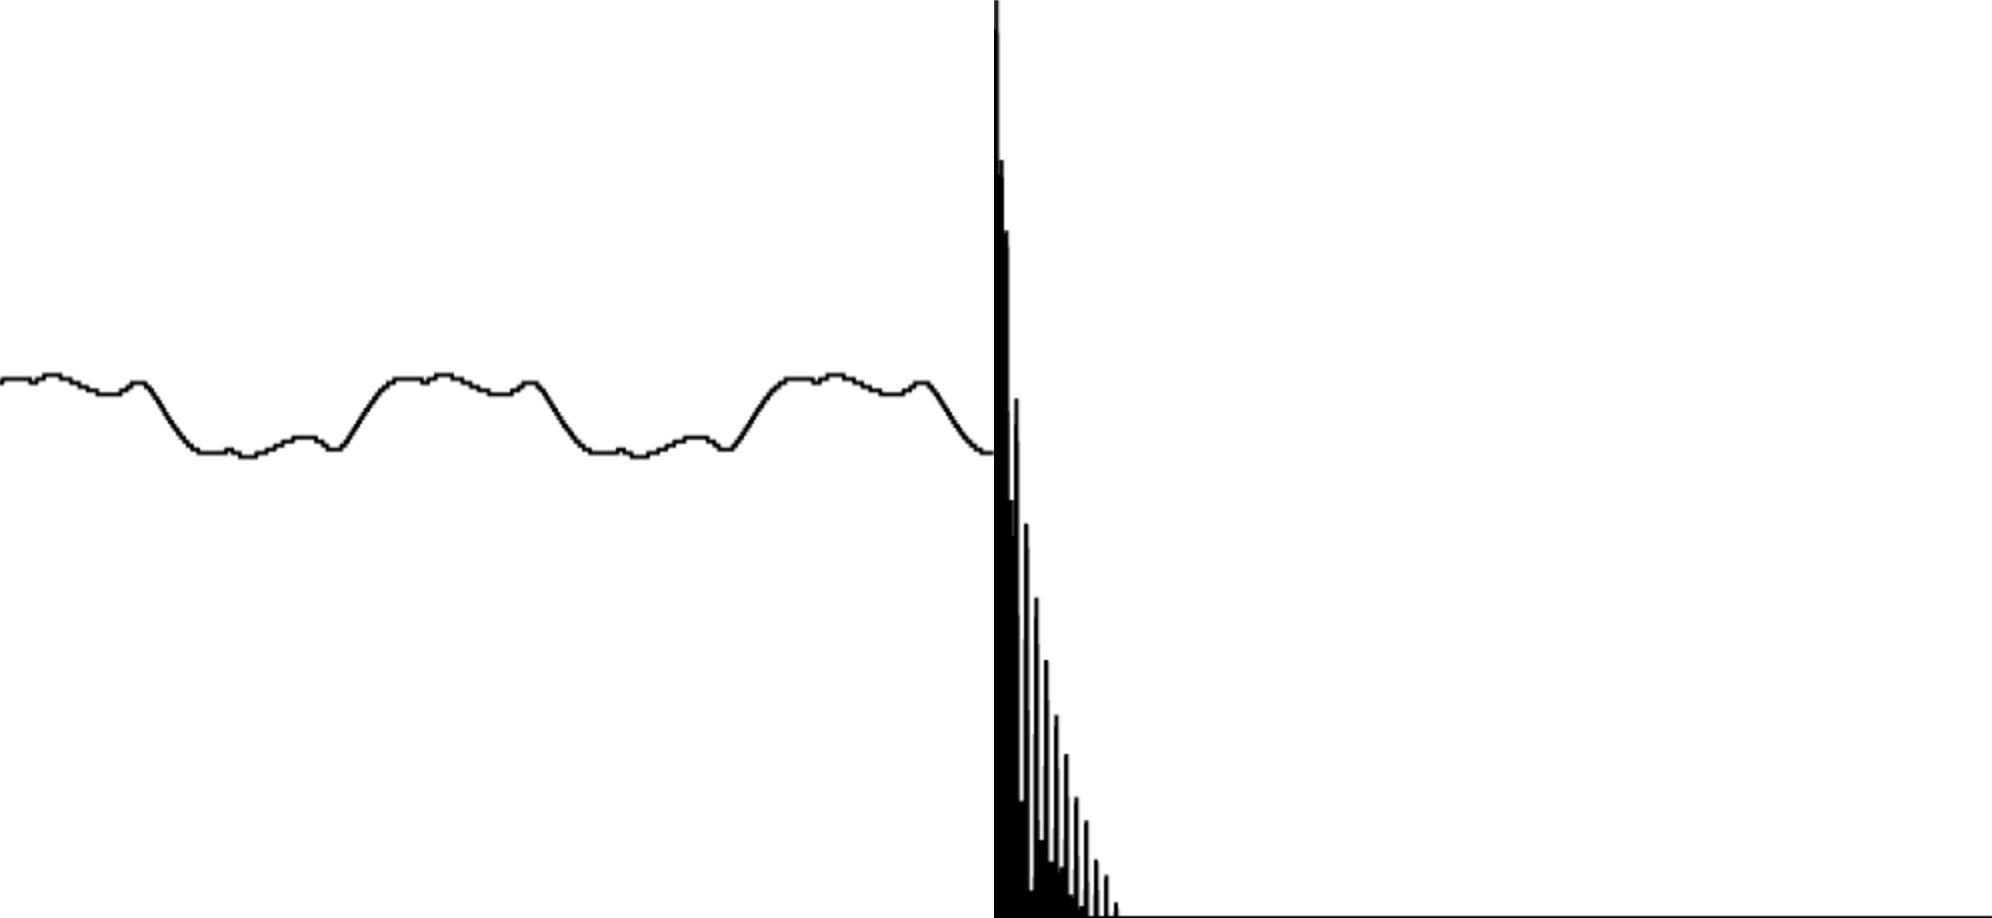 Triangle at 55Hz through a wave shaper and a high-pass filter at 120Hz